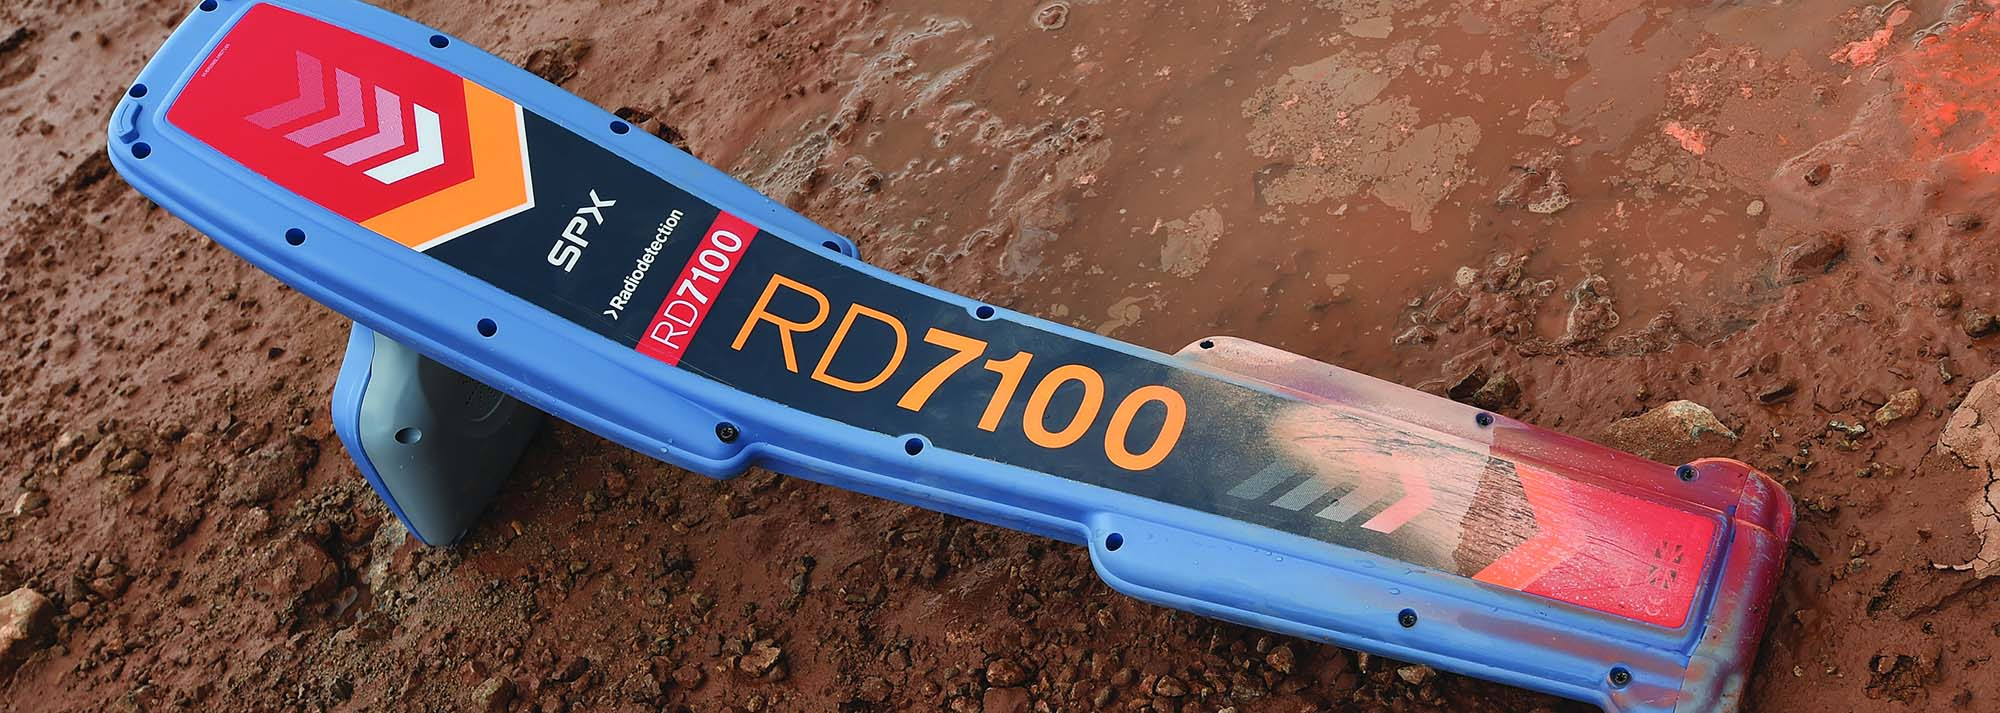 Radiodetection RD7100